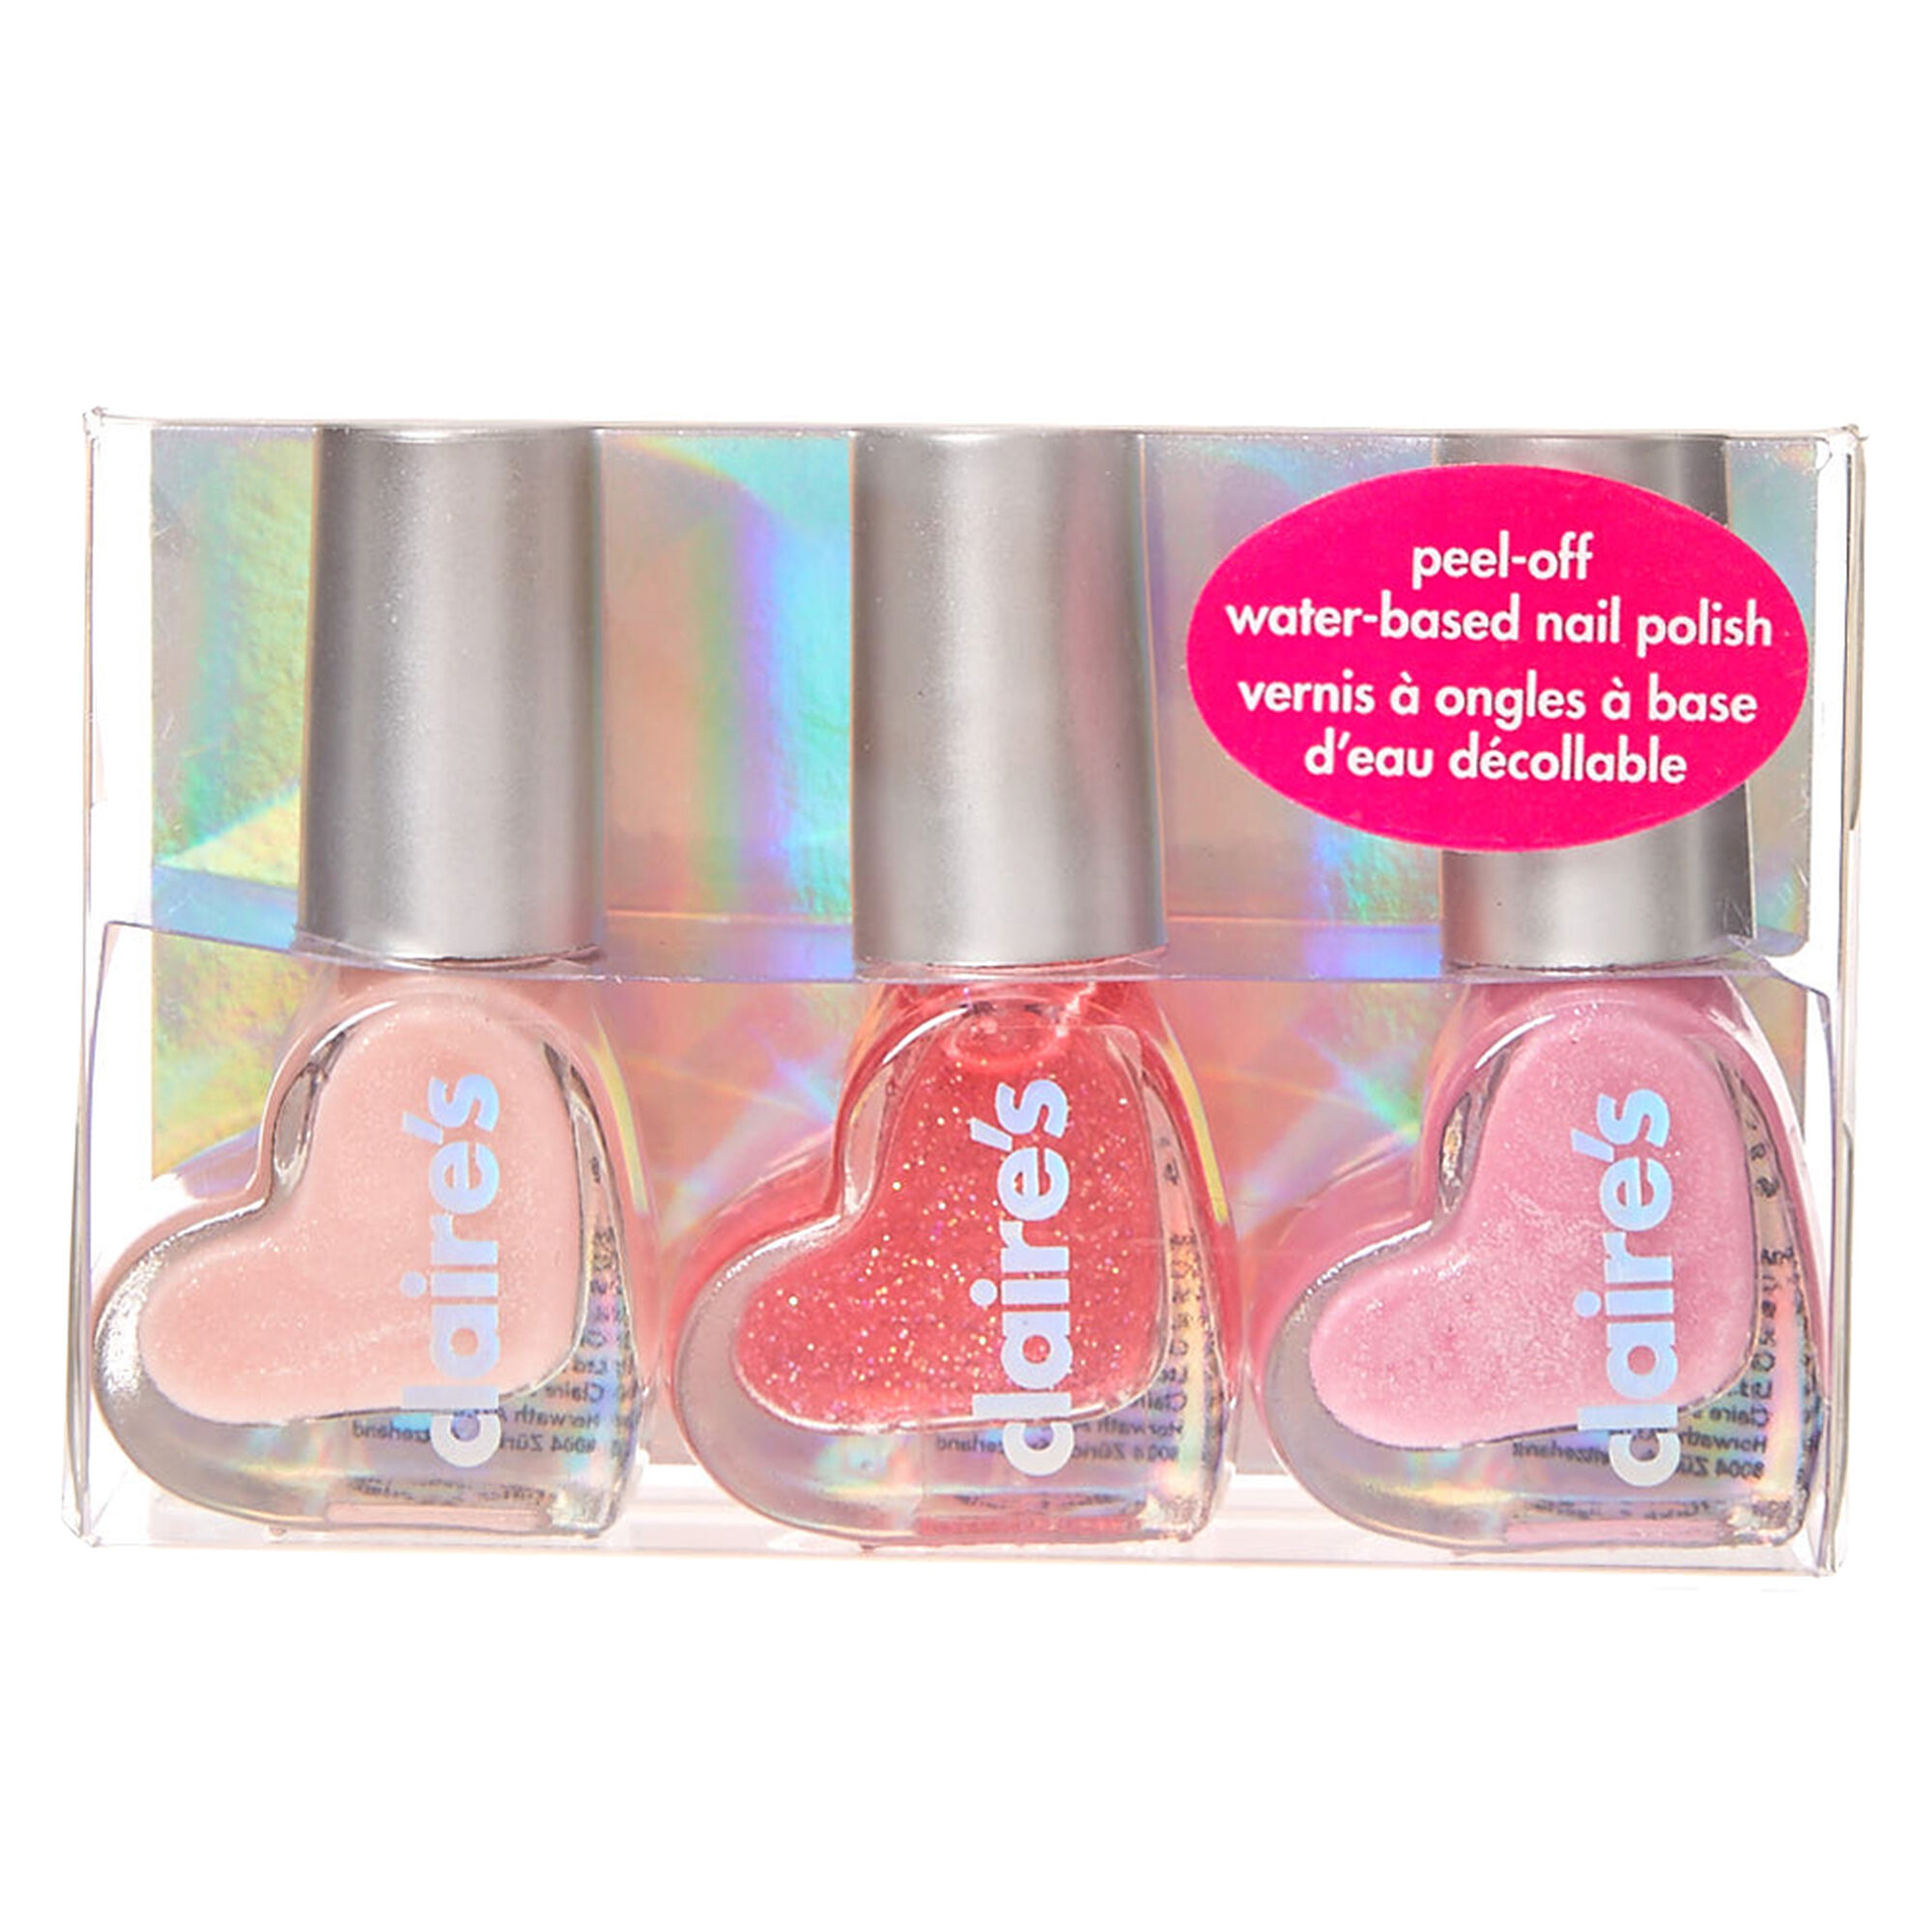 Glittery Pink Peel-Off Water-Based Nail Polish Trio | Claire\'s US